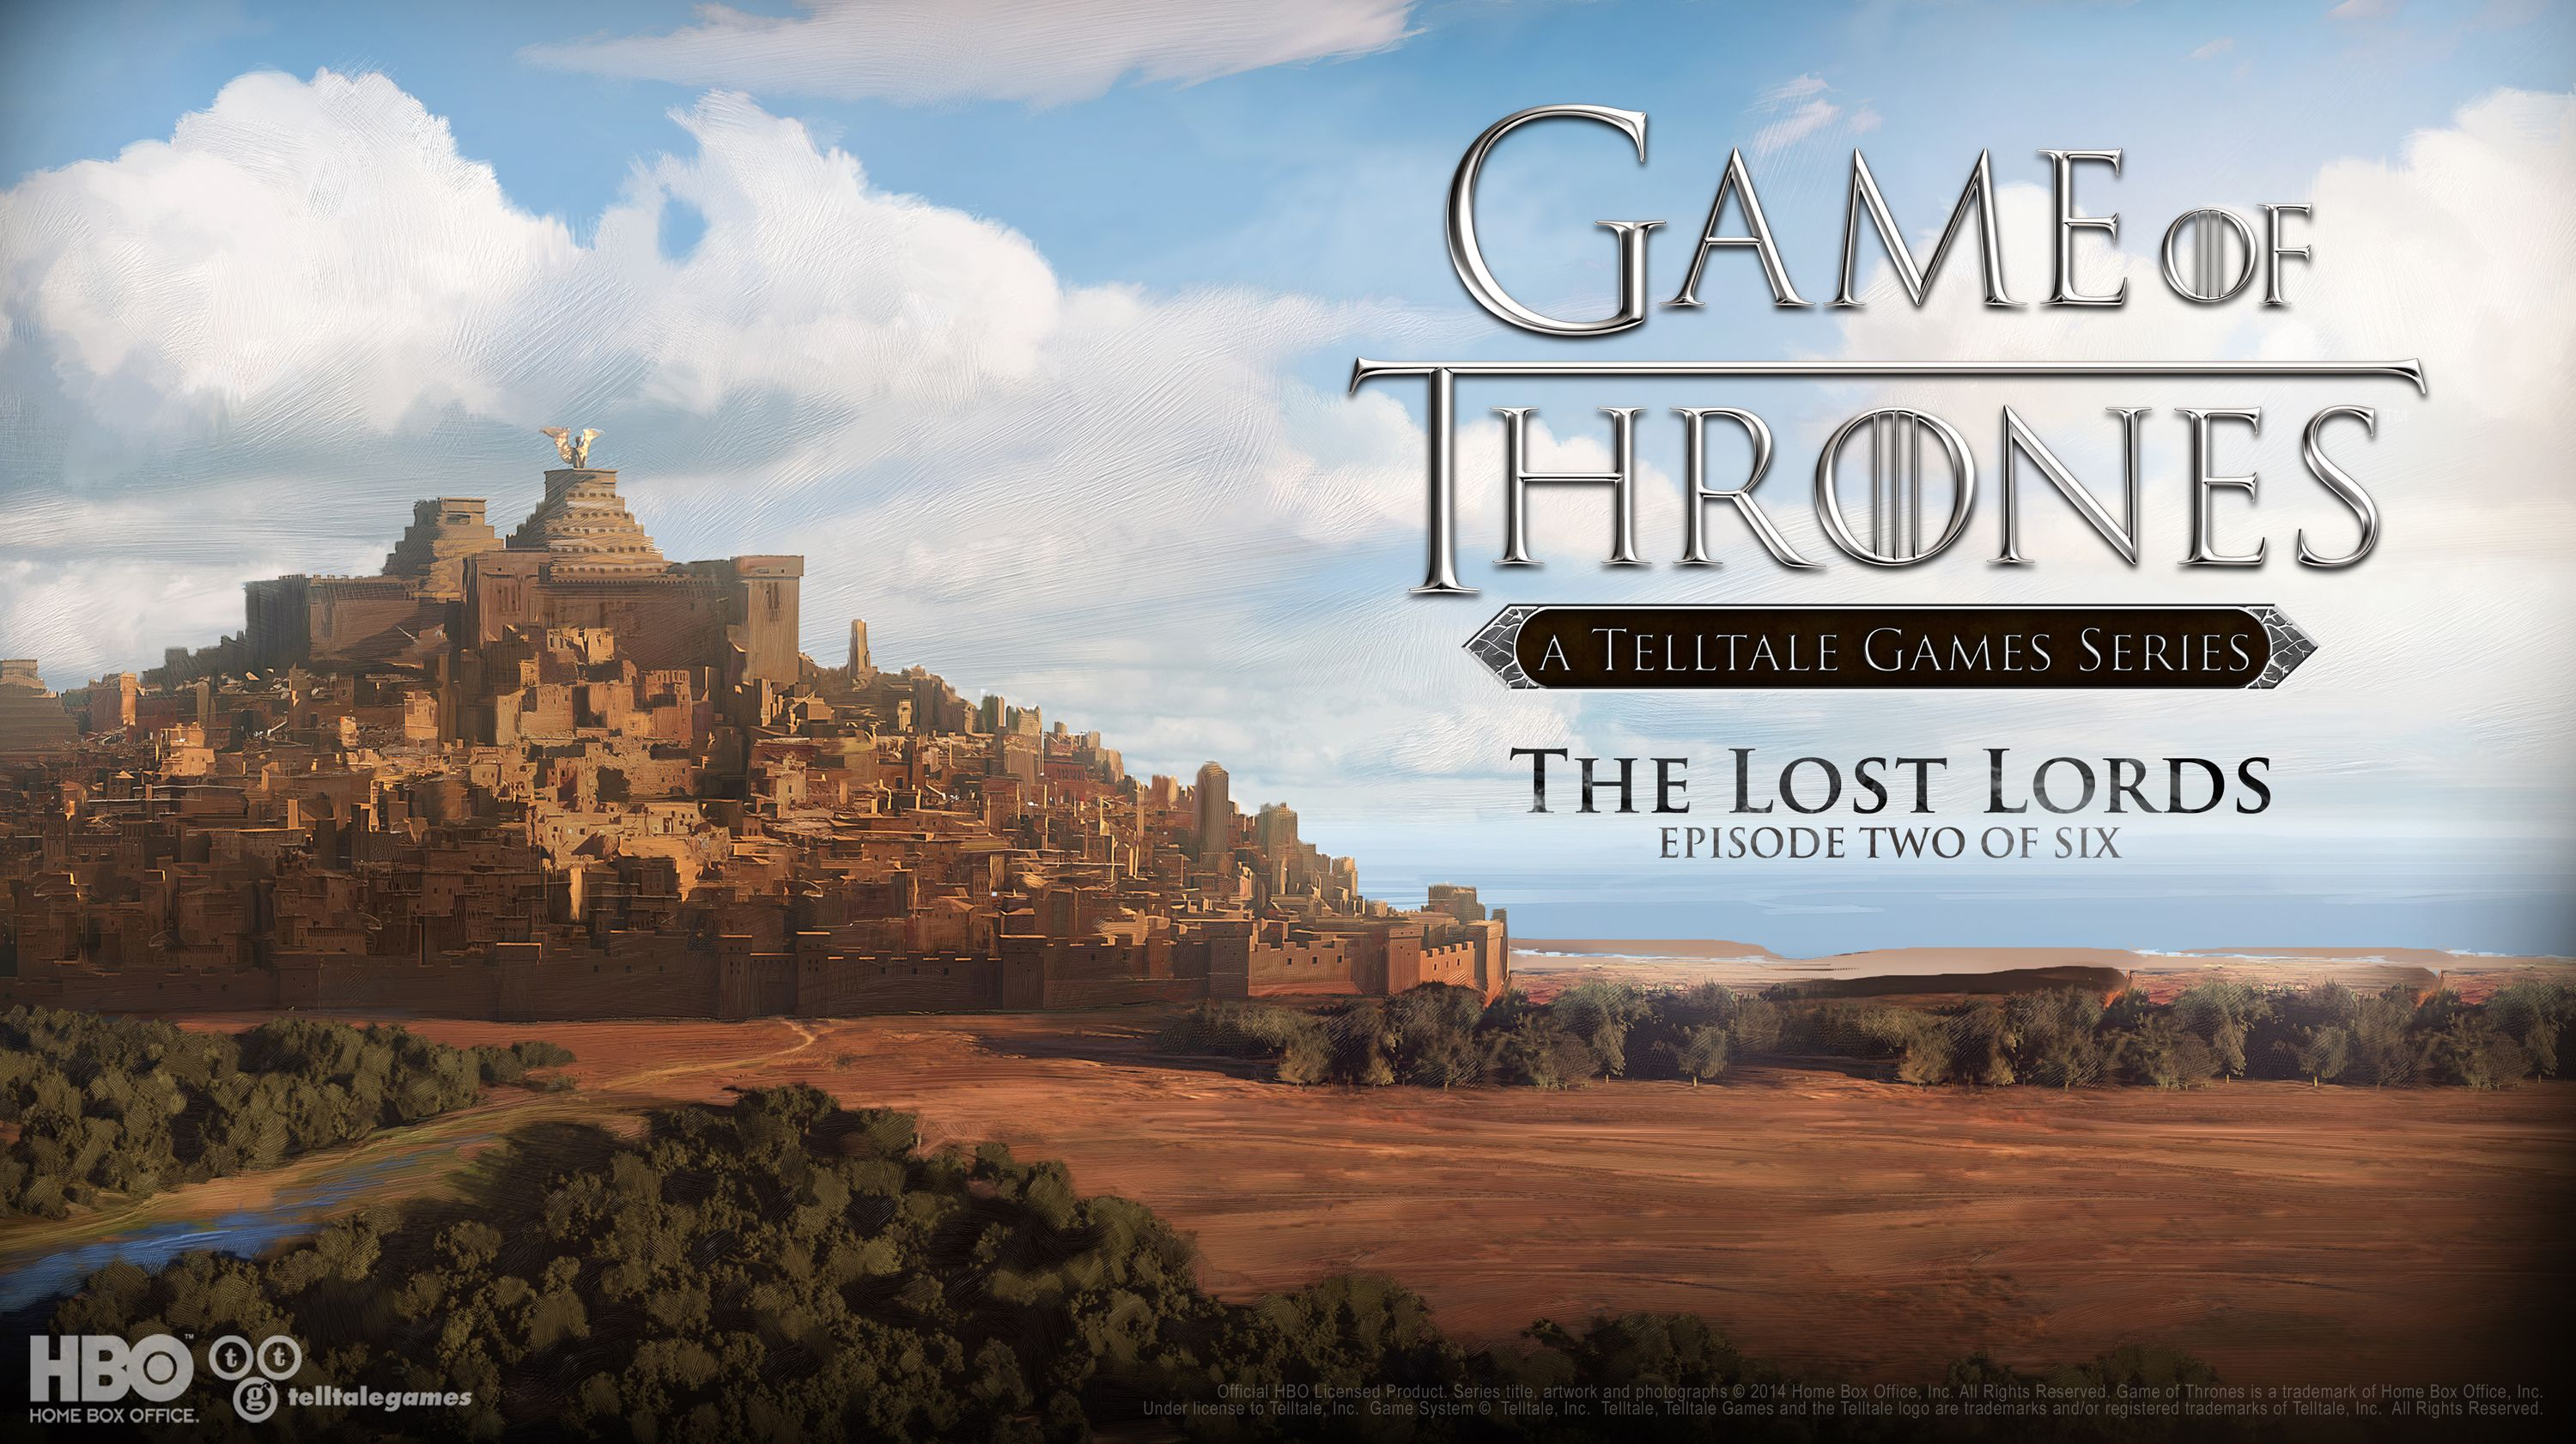 Telltale S Game Of Thrones Episode 2 Release Dates Revealed Http Onlinetoughguys Com Game Of Thrones Episodes Game Of Thrones Telltale Game Of Thrones Series